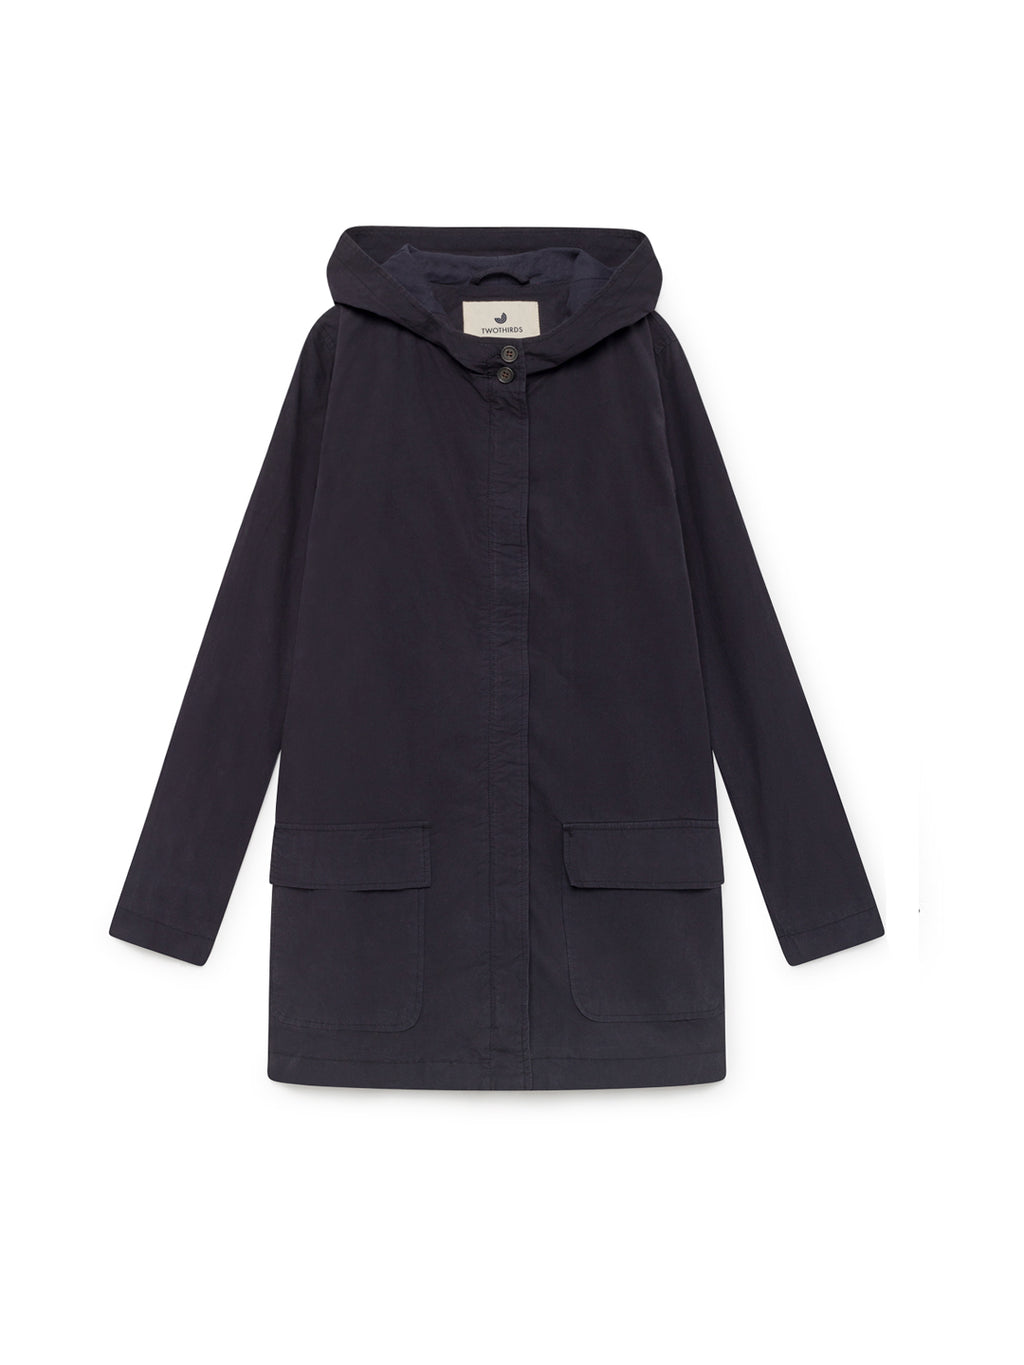 TWOTHIRDS Womens Jacket: Skorpio - Navy front